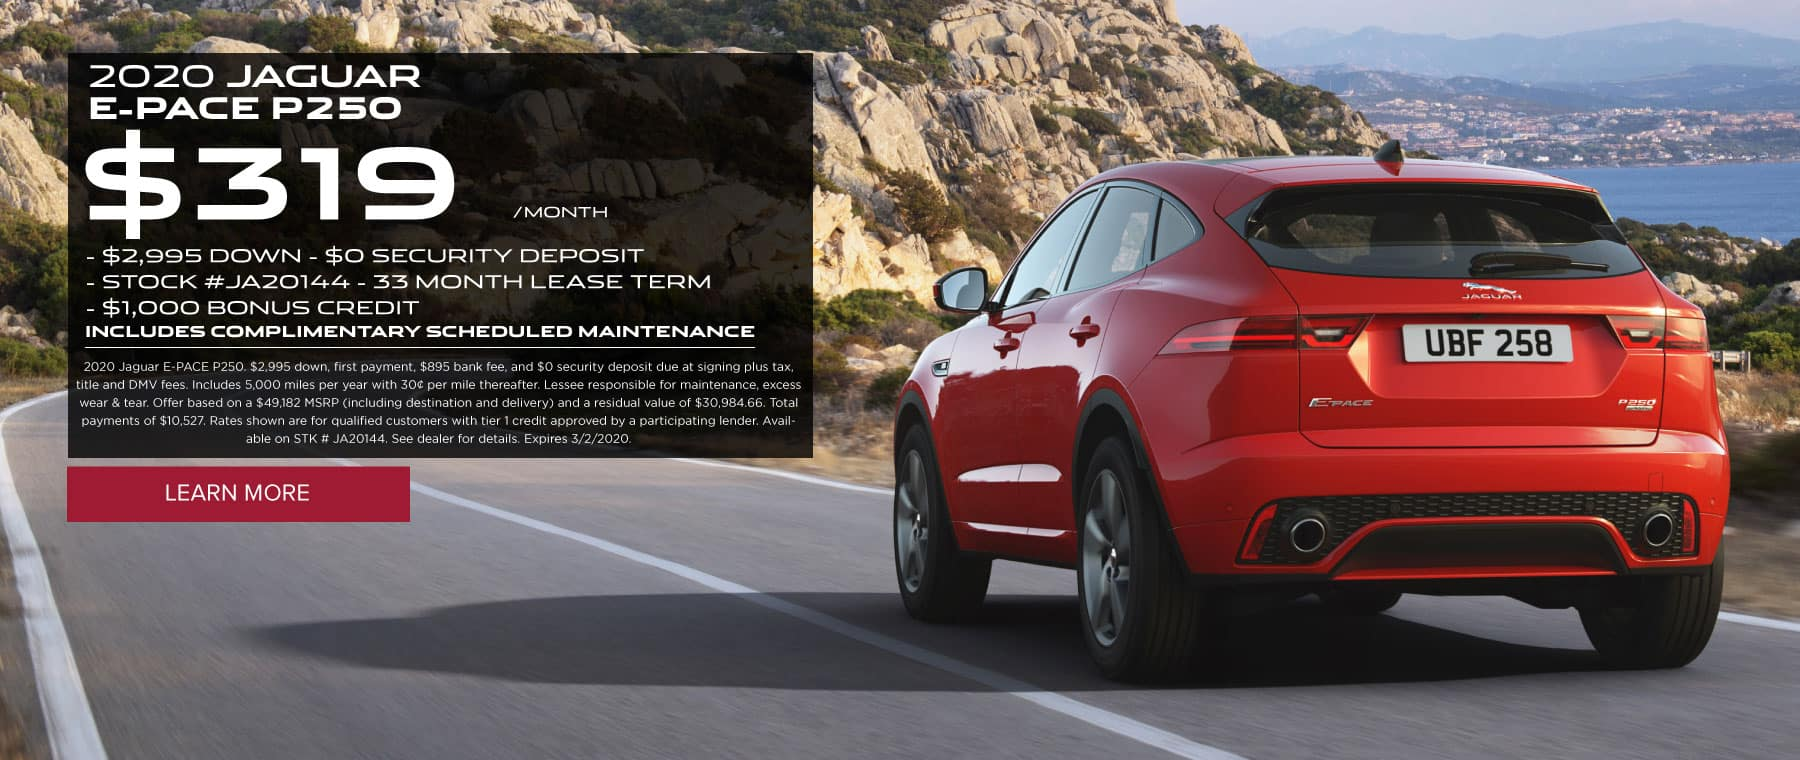 Service special Link to service special page   2020 JAGUAR  E-PACE P250  $319 per month  - $2,995 DOWN. $0 SECURITY DEPOSIT. STOCK #JA20144. 33 MONTH LEASE TERM. $1,000 BONUS CREDIT INCLUDES COMPLIMENTARY SCHEDULED MAINTENANCE. 2020 Jaguar E-PACE P250. $2,995 down, first payment, $895 bank fee, and $0 security deposit due at signing plus tax, title and DMV fees. Includes 5,000 miles per year with 30¢ per mile thereafter. Lessee responsible for maintenance, excess wear & tear. Offer based on a $49,182 MSRP (including destination and delivery) and a residual value of $30,984.66. Total payments of $10,527. Rates shown are for qualified customers with tier 1 credit approved by a participating lender. Available on STK # JA20144. See dealer for details. Expires 3/2/2020.. Click to learn more. Red E-PACE on road with mountain and water around